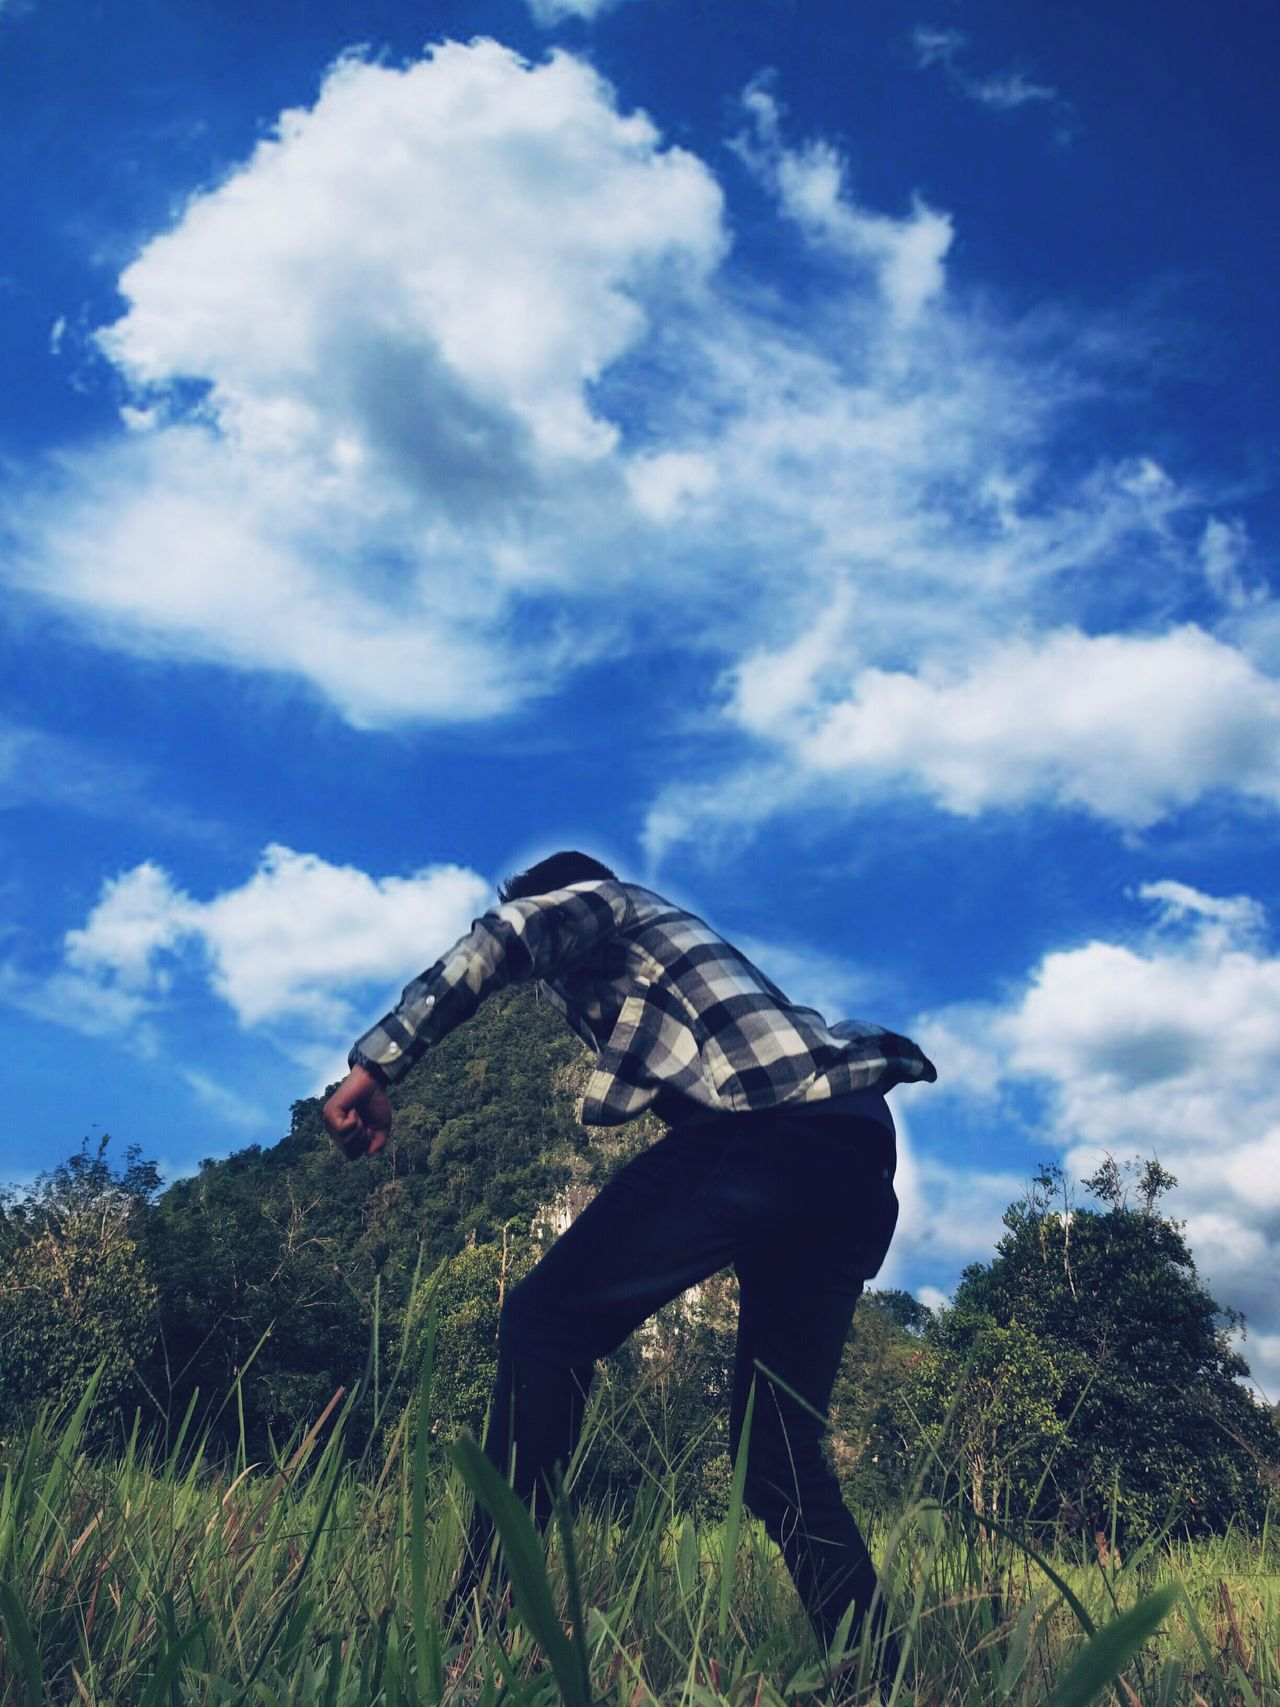 Cloud - Sky Sky Outdoors People Camouflage Clothing Nature Low Angle View Extinct Landscape_Collection Landscape Beauty In Nature